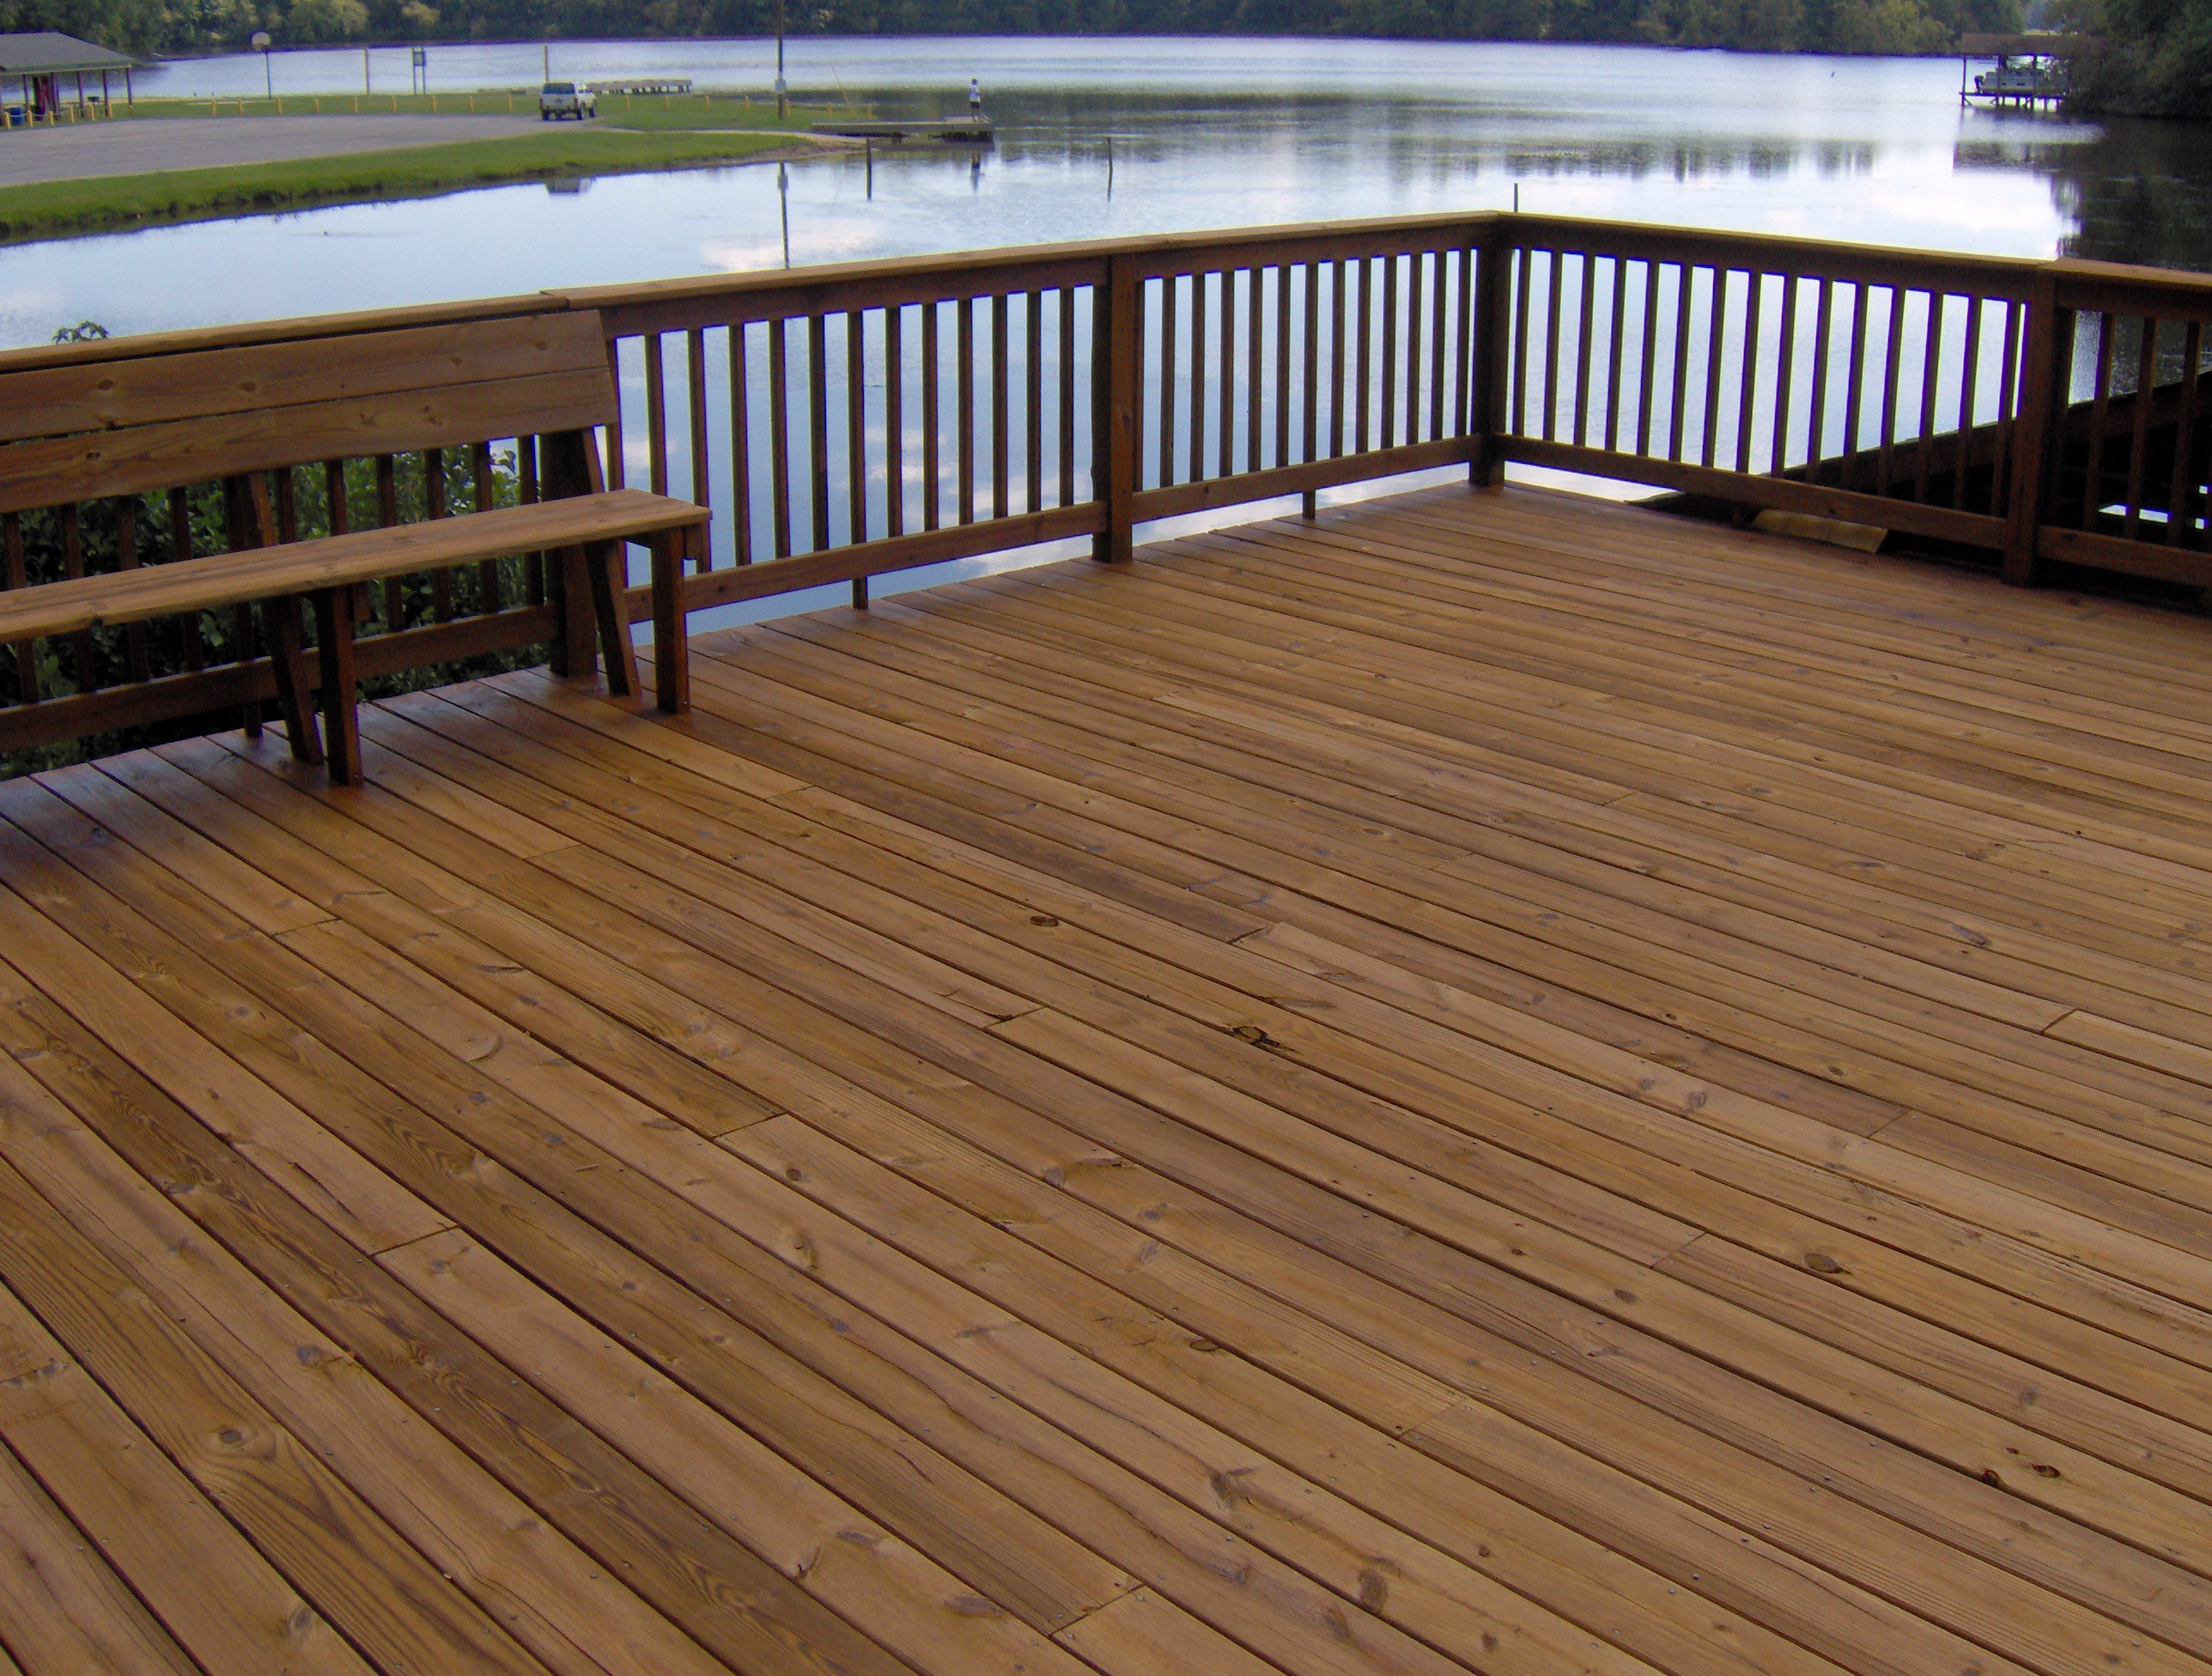 Woodworking plans wood deck pdf plans for Deck blueprints